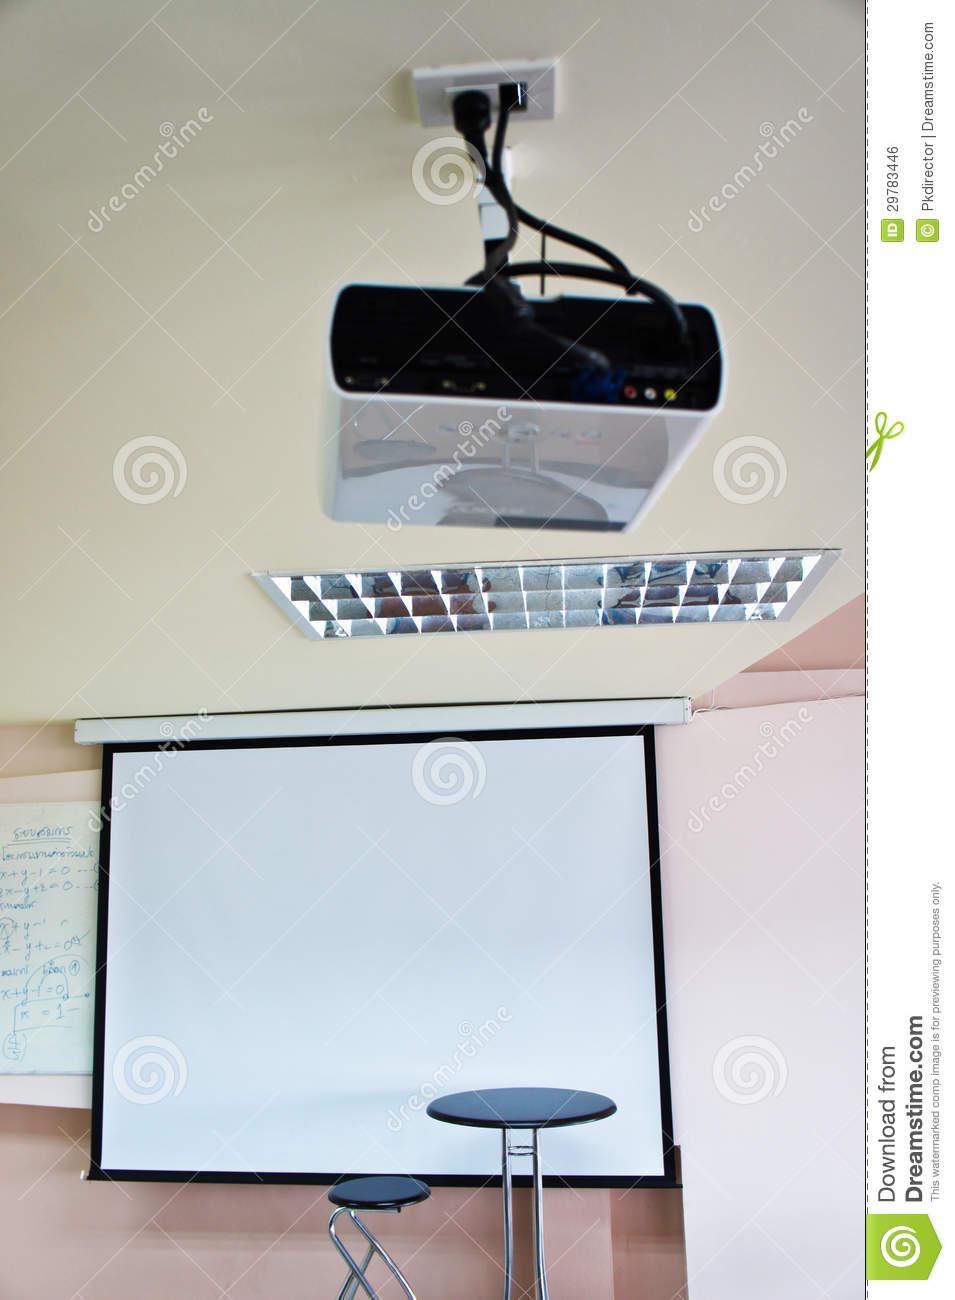 Chair Of The Teacher And LCD Projector In The Classroom  : chair teacher lcd projector classroom thailand 29783446 School Desk Chair <strong>Drawing</strong> from www.dreamstime.com size 955 x 1300 jpeg 92kB